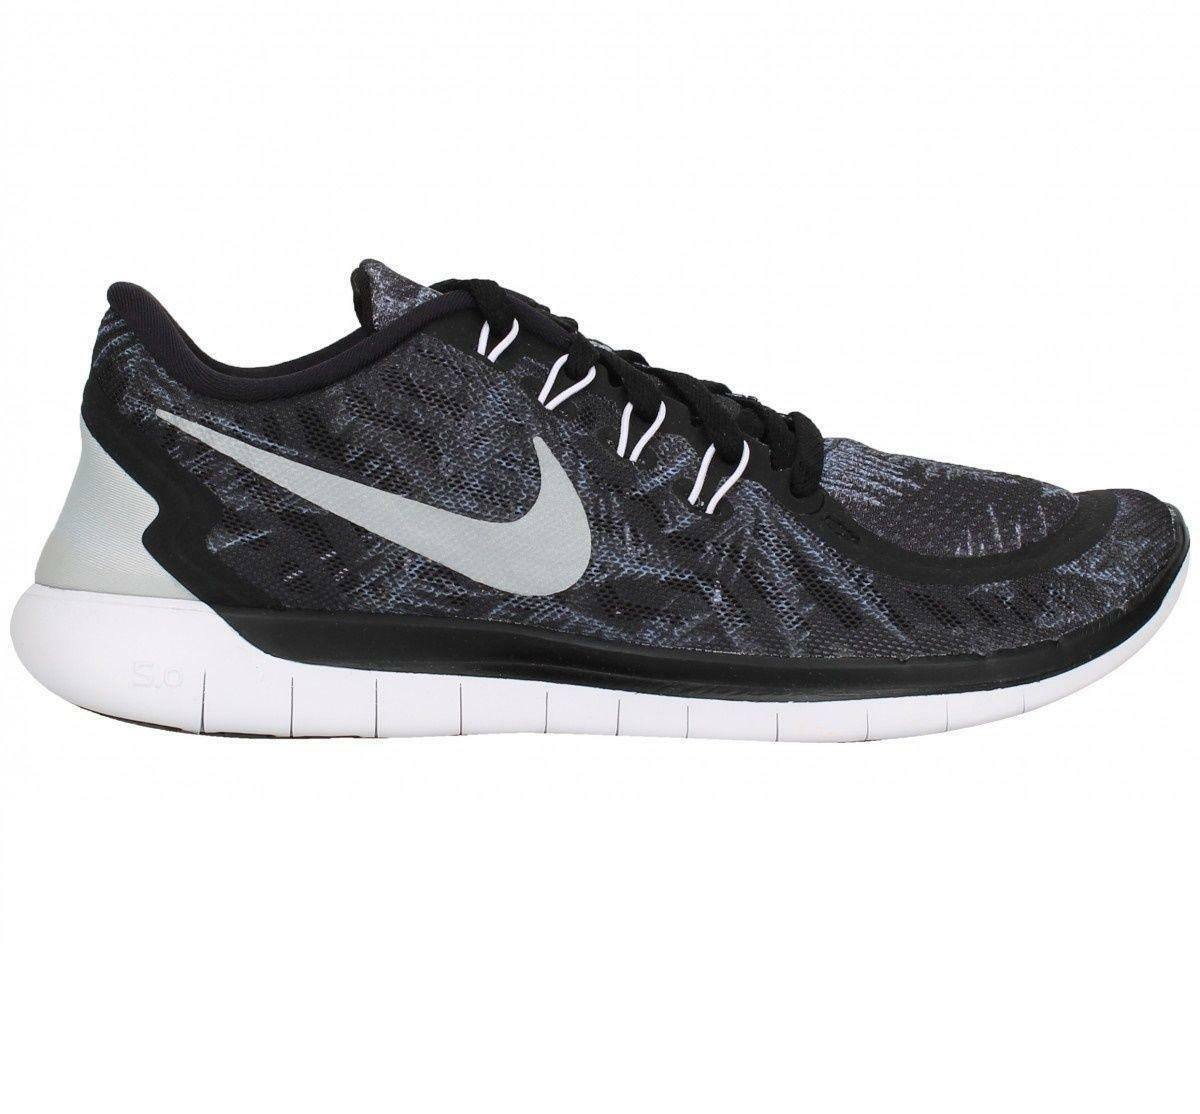 Zapatos promocionales para hombres y mujeres Womens NIKE FREE 5.0 SOLSTICE Black Running Trainers 806588 001